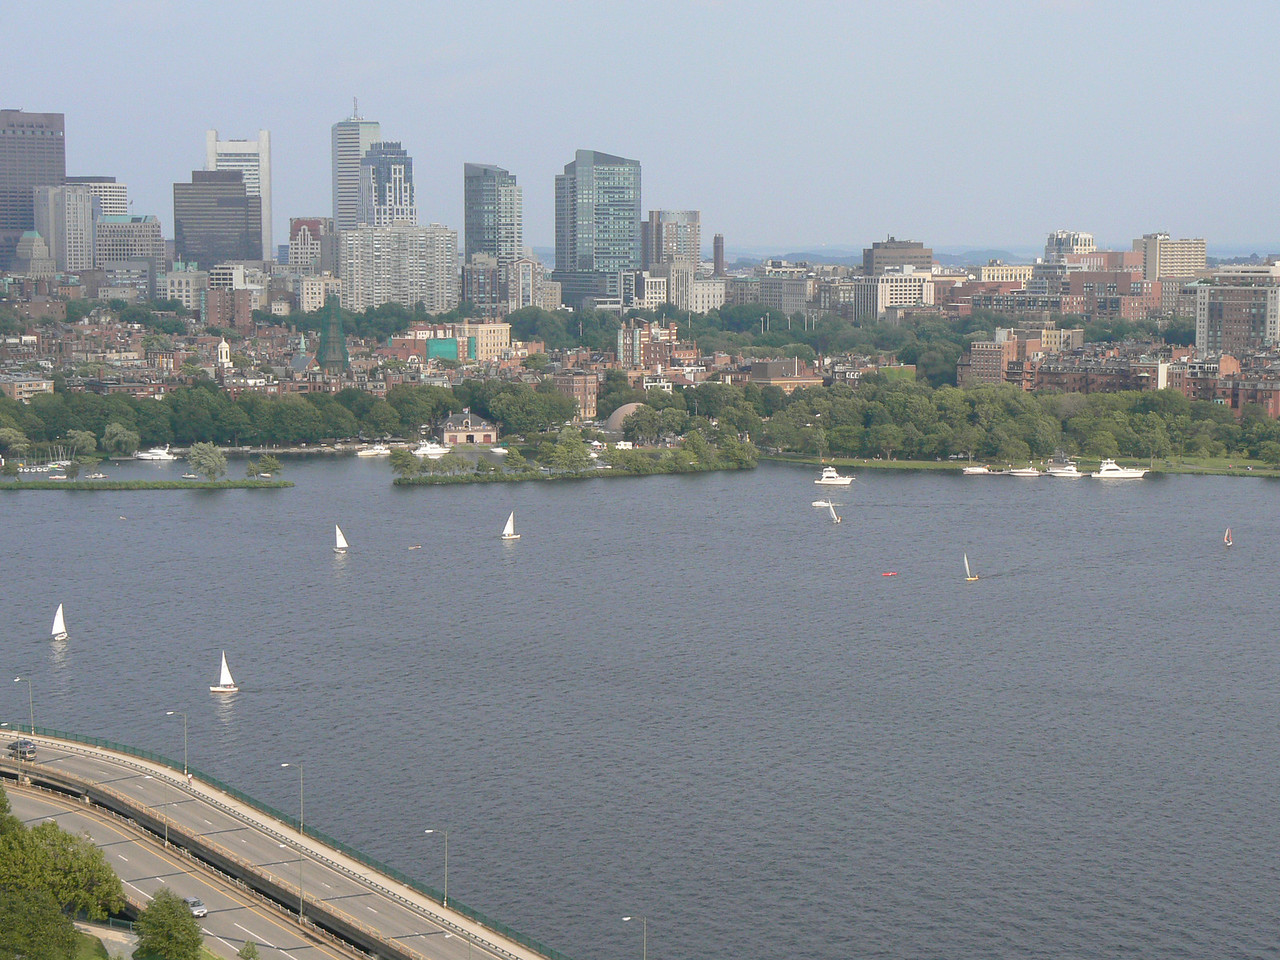 Boston, as seen from MIT housing